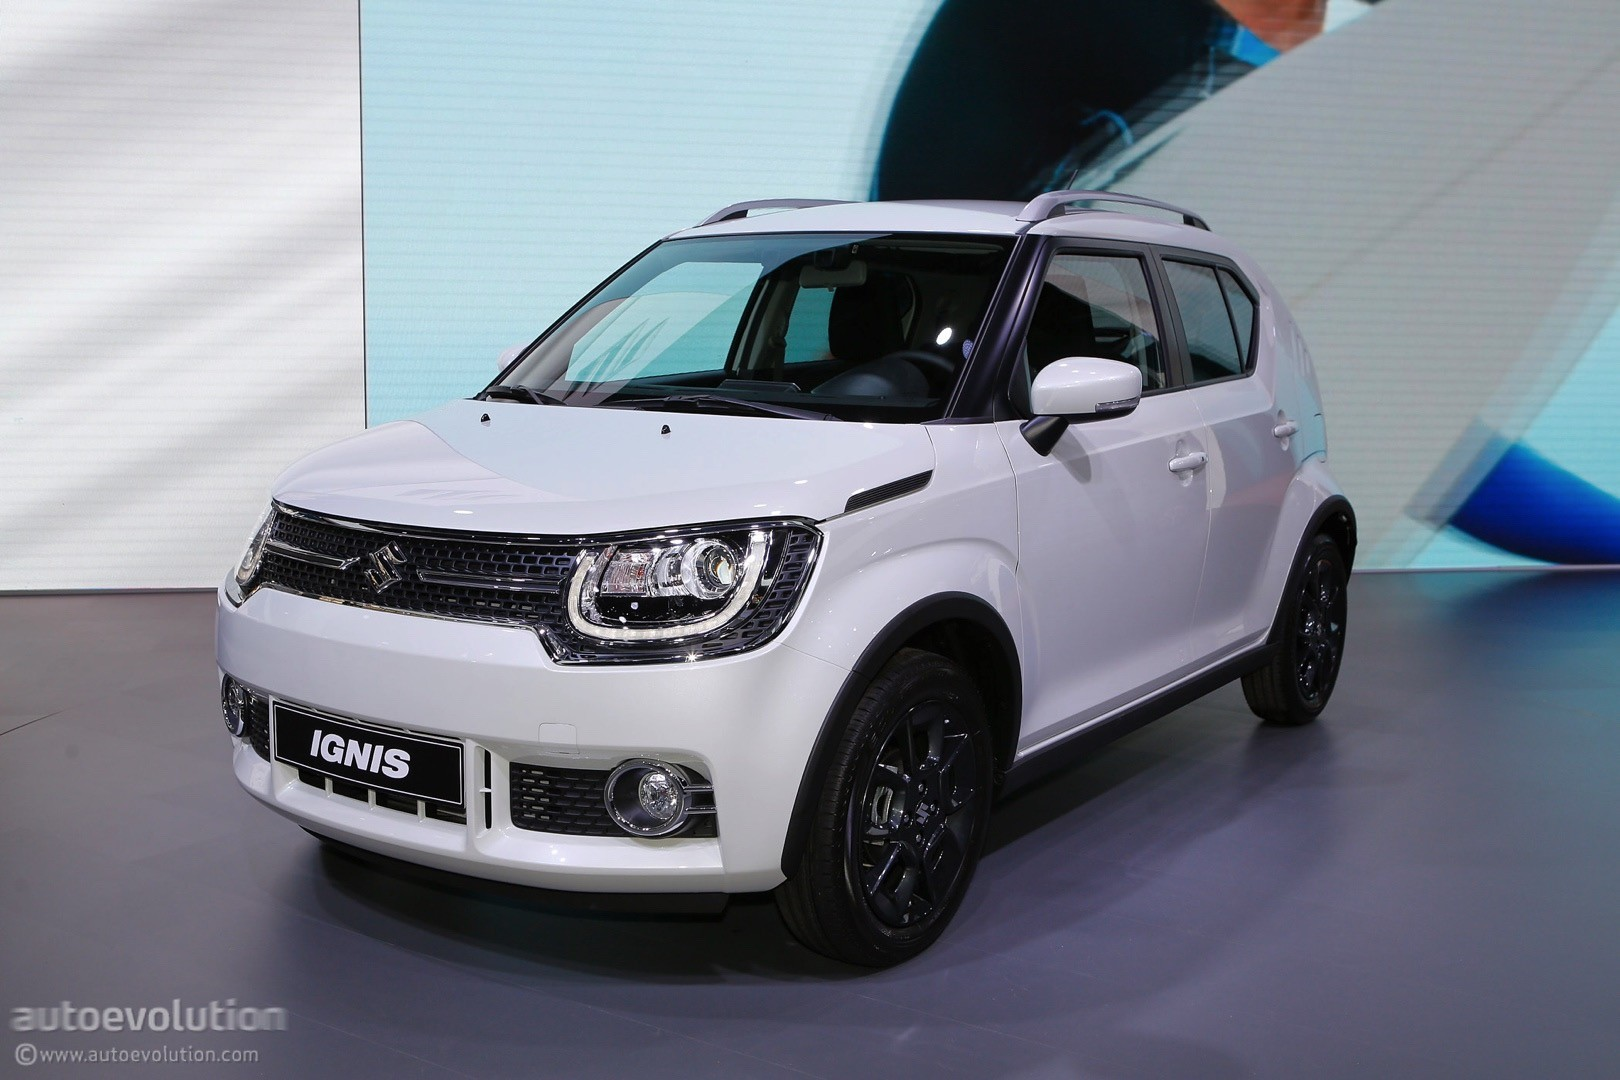 Where Are Suzuki Ignis Made